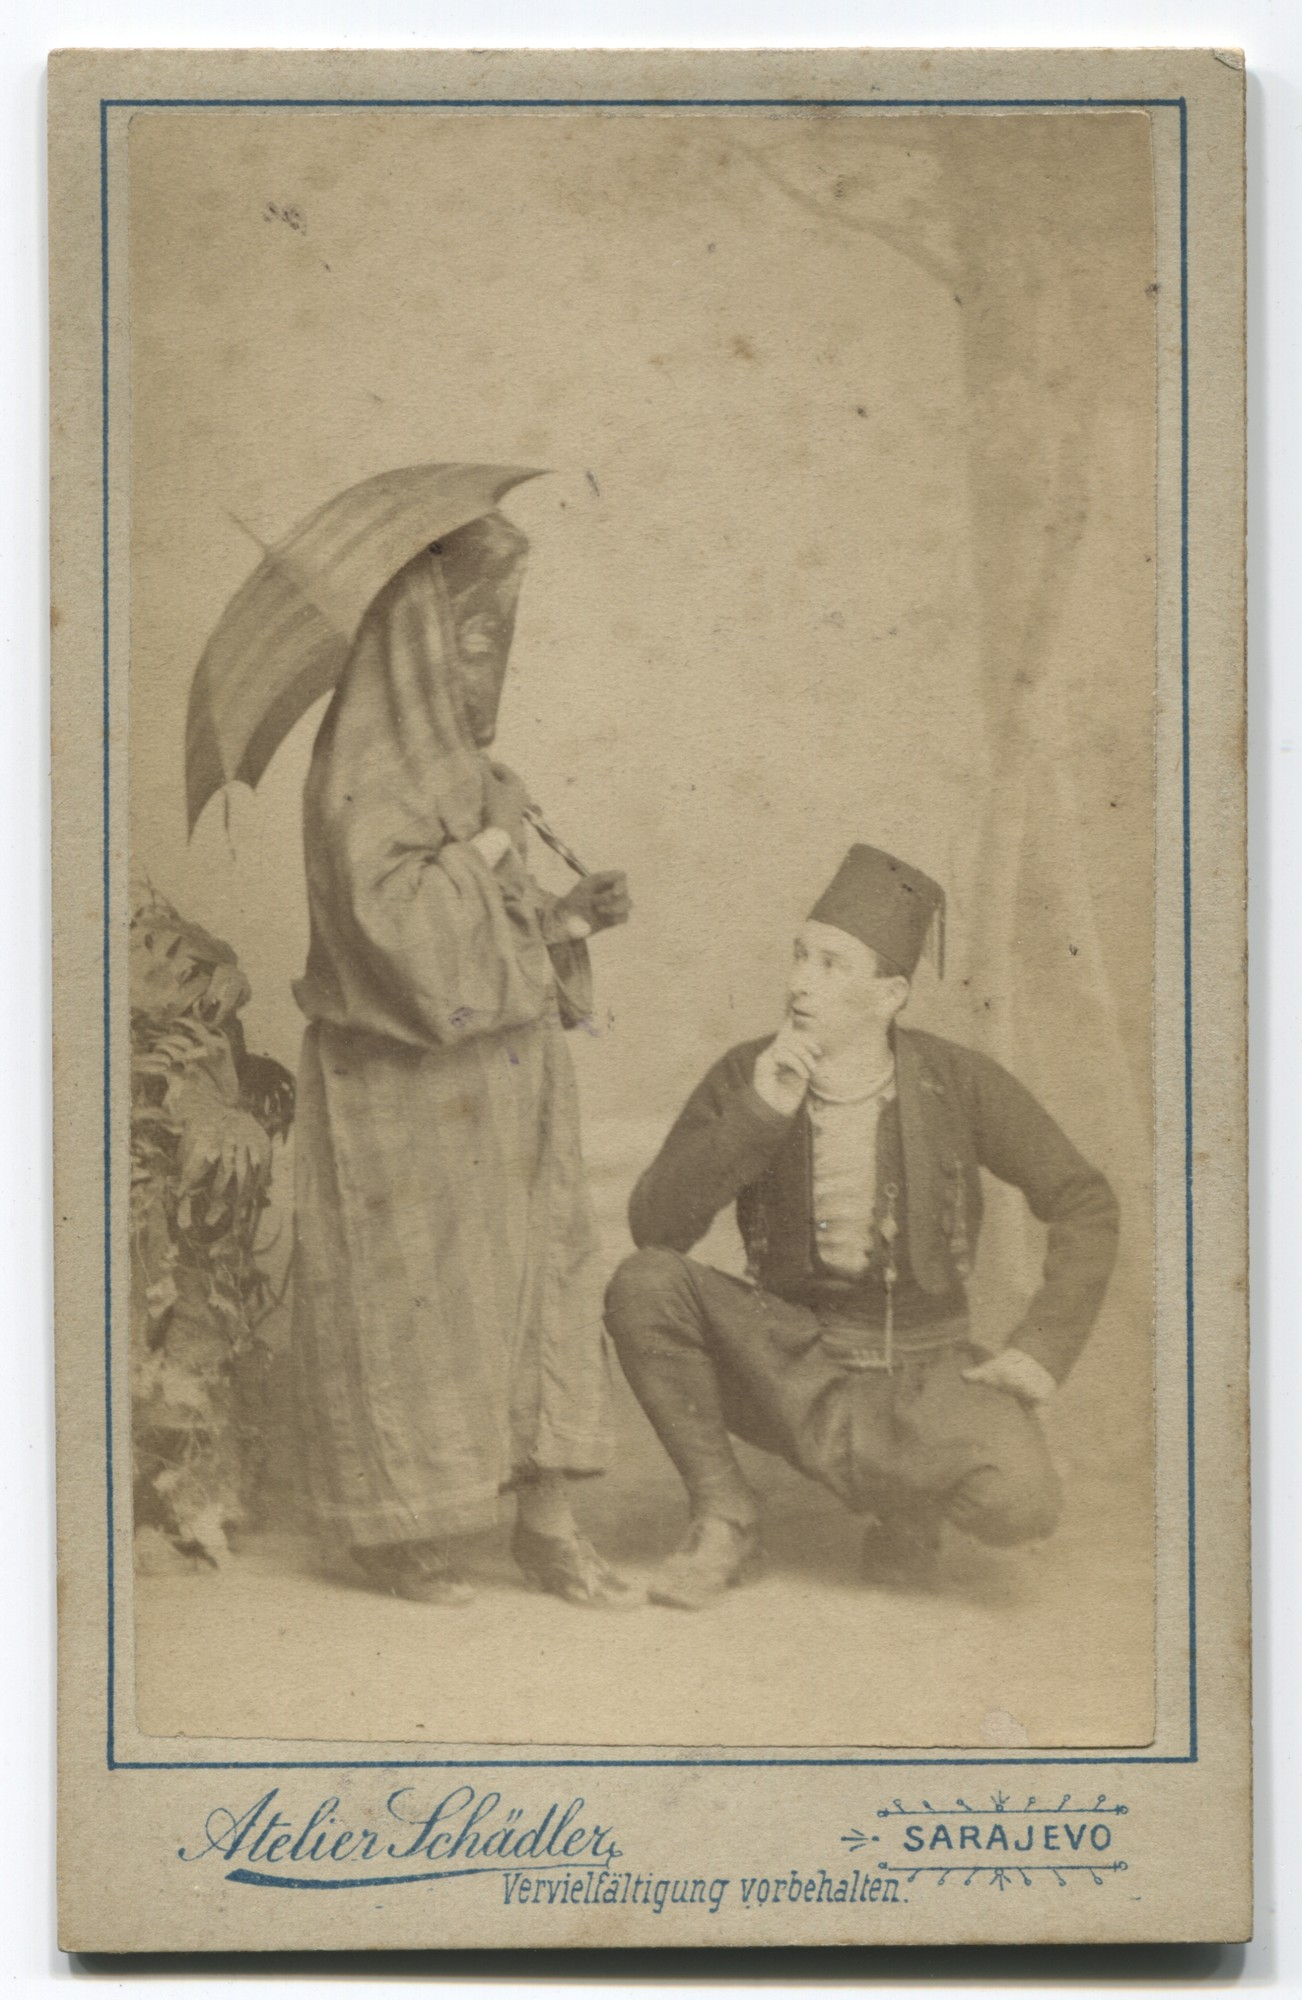 Souvenir card depicting a Muslim woman and man, © Museum of City of Sarajevo